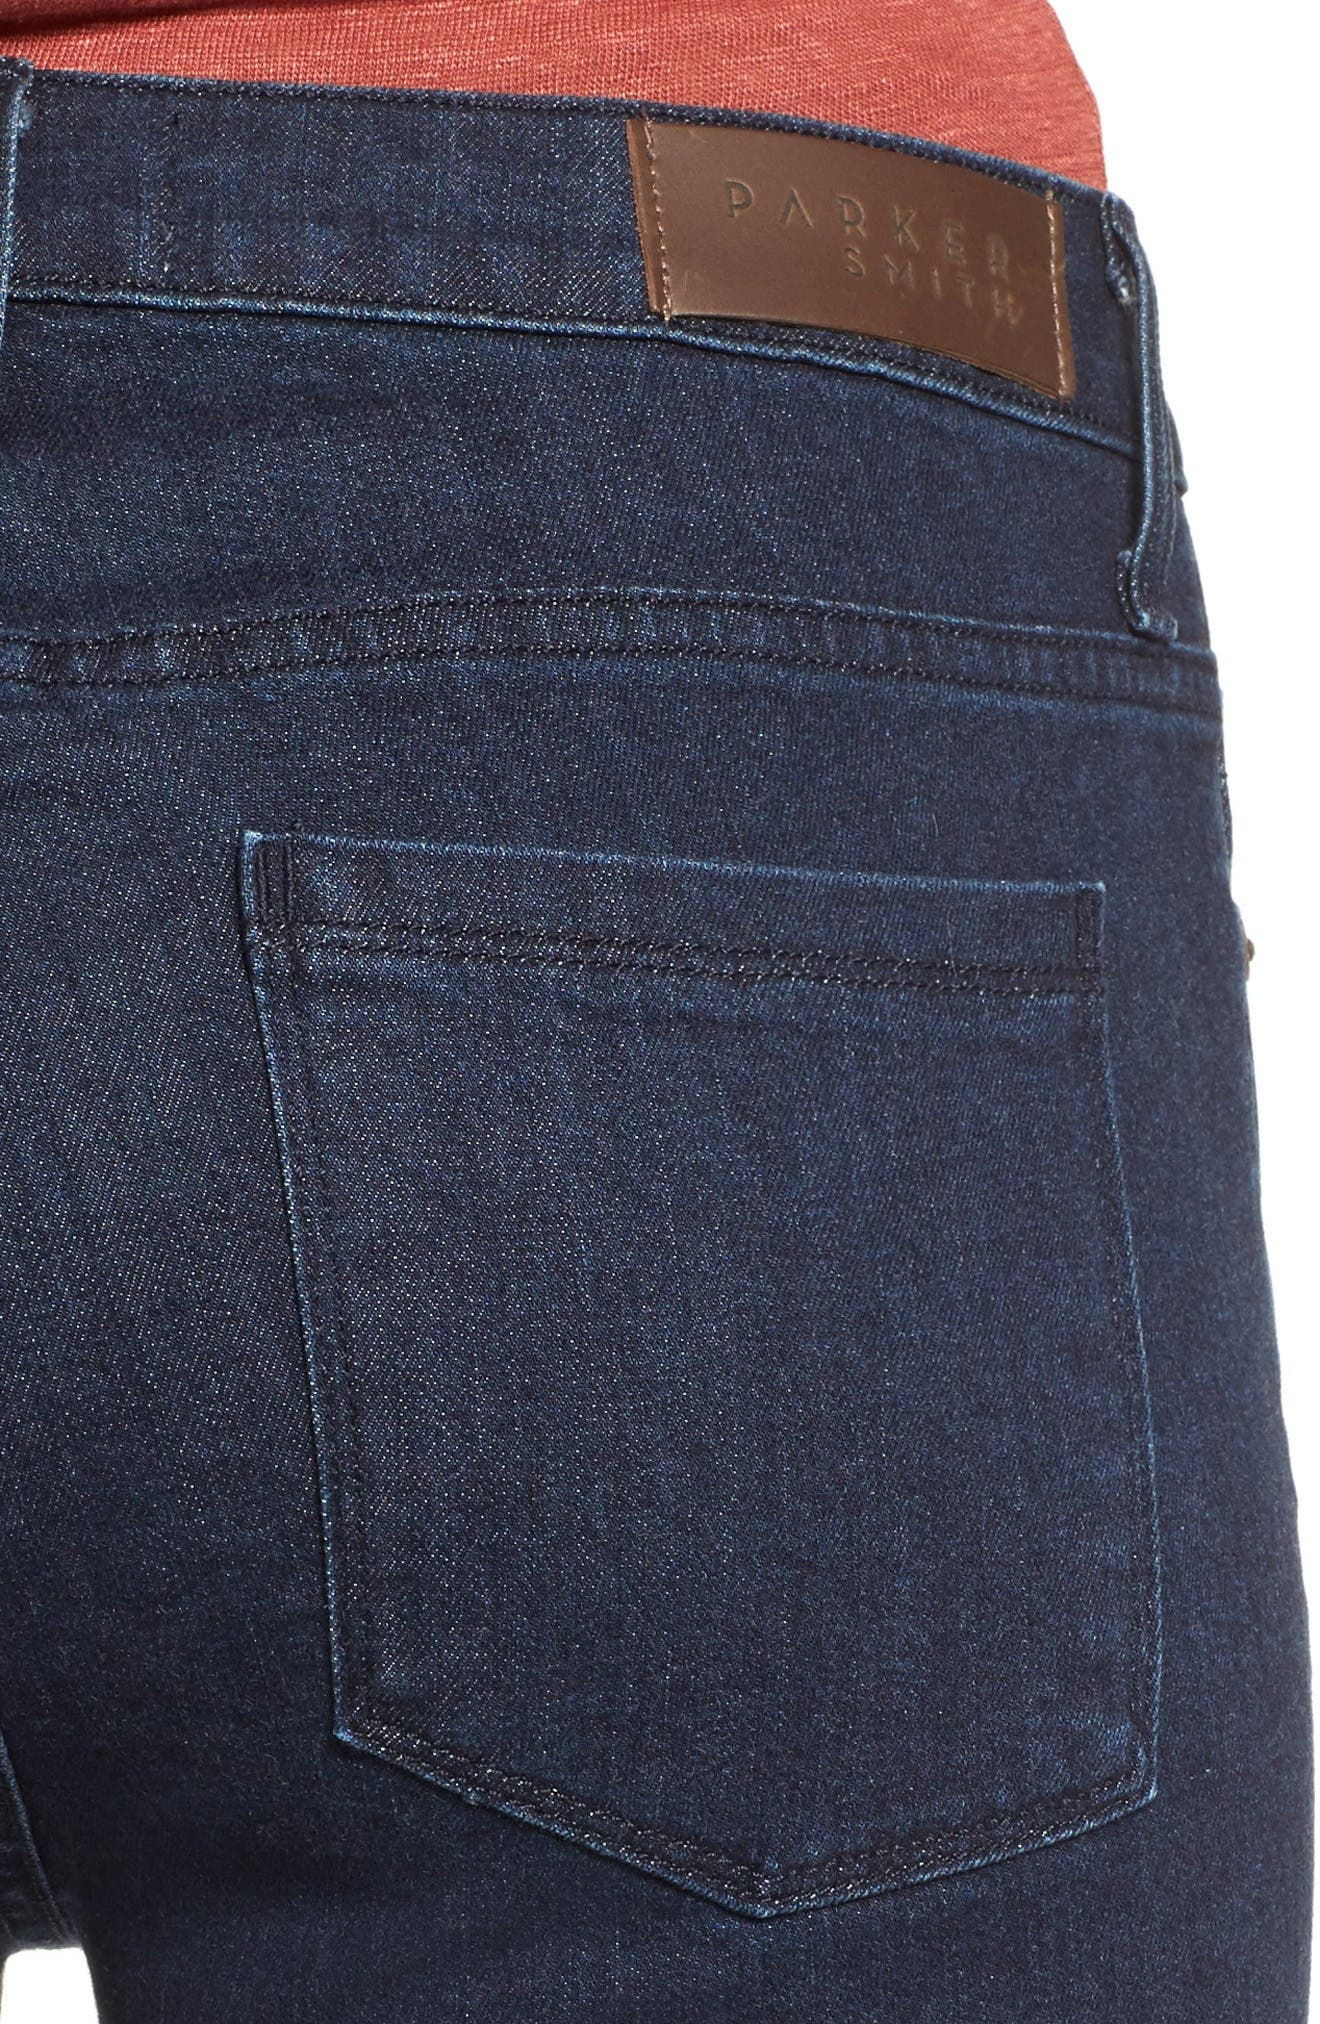 Alternate Image 5  - PARKER SMITH Brynna Crop Flare Jeans (Baltic)